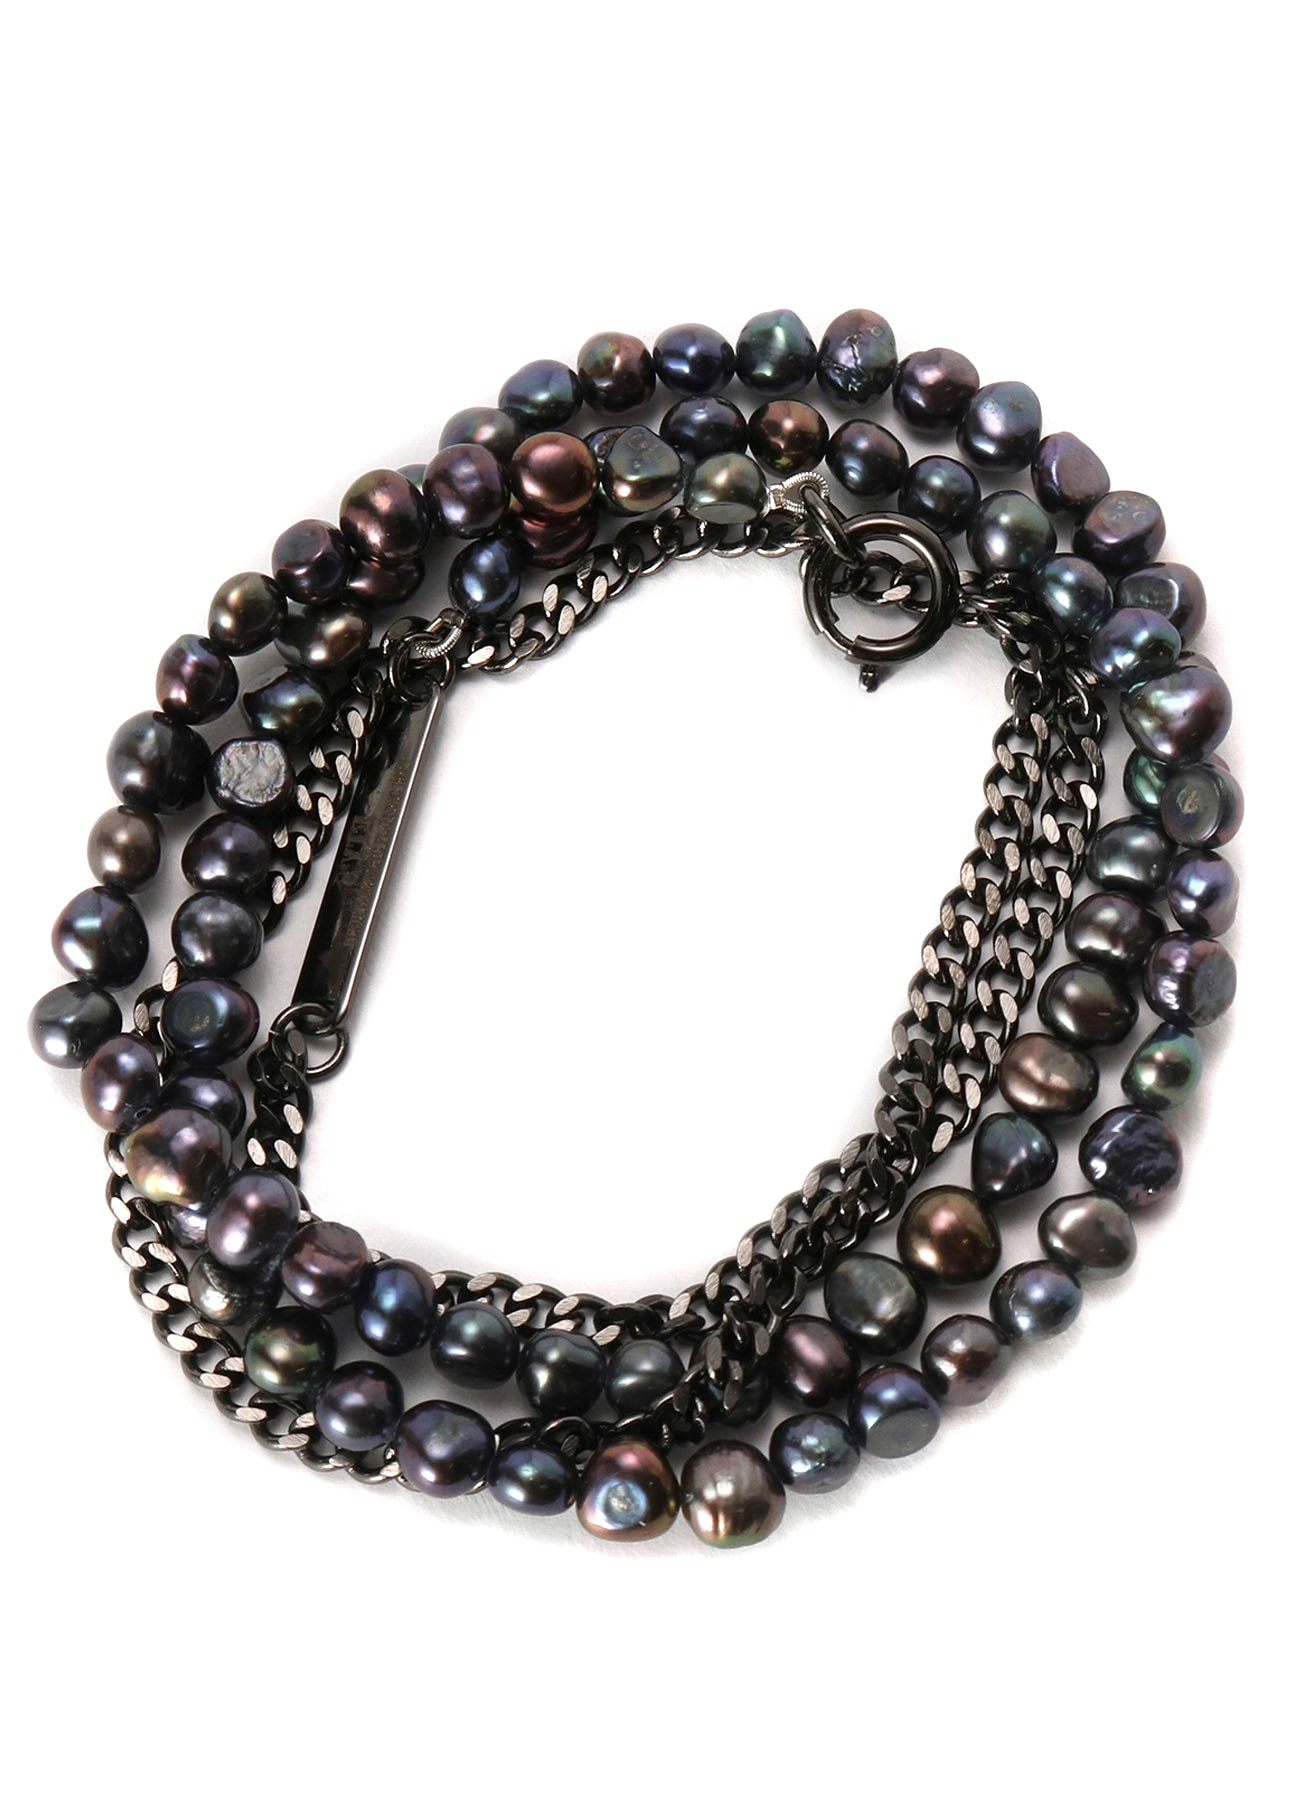 Freshwater Black Pearl Necklace